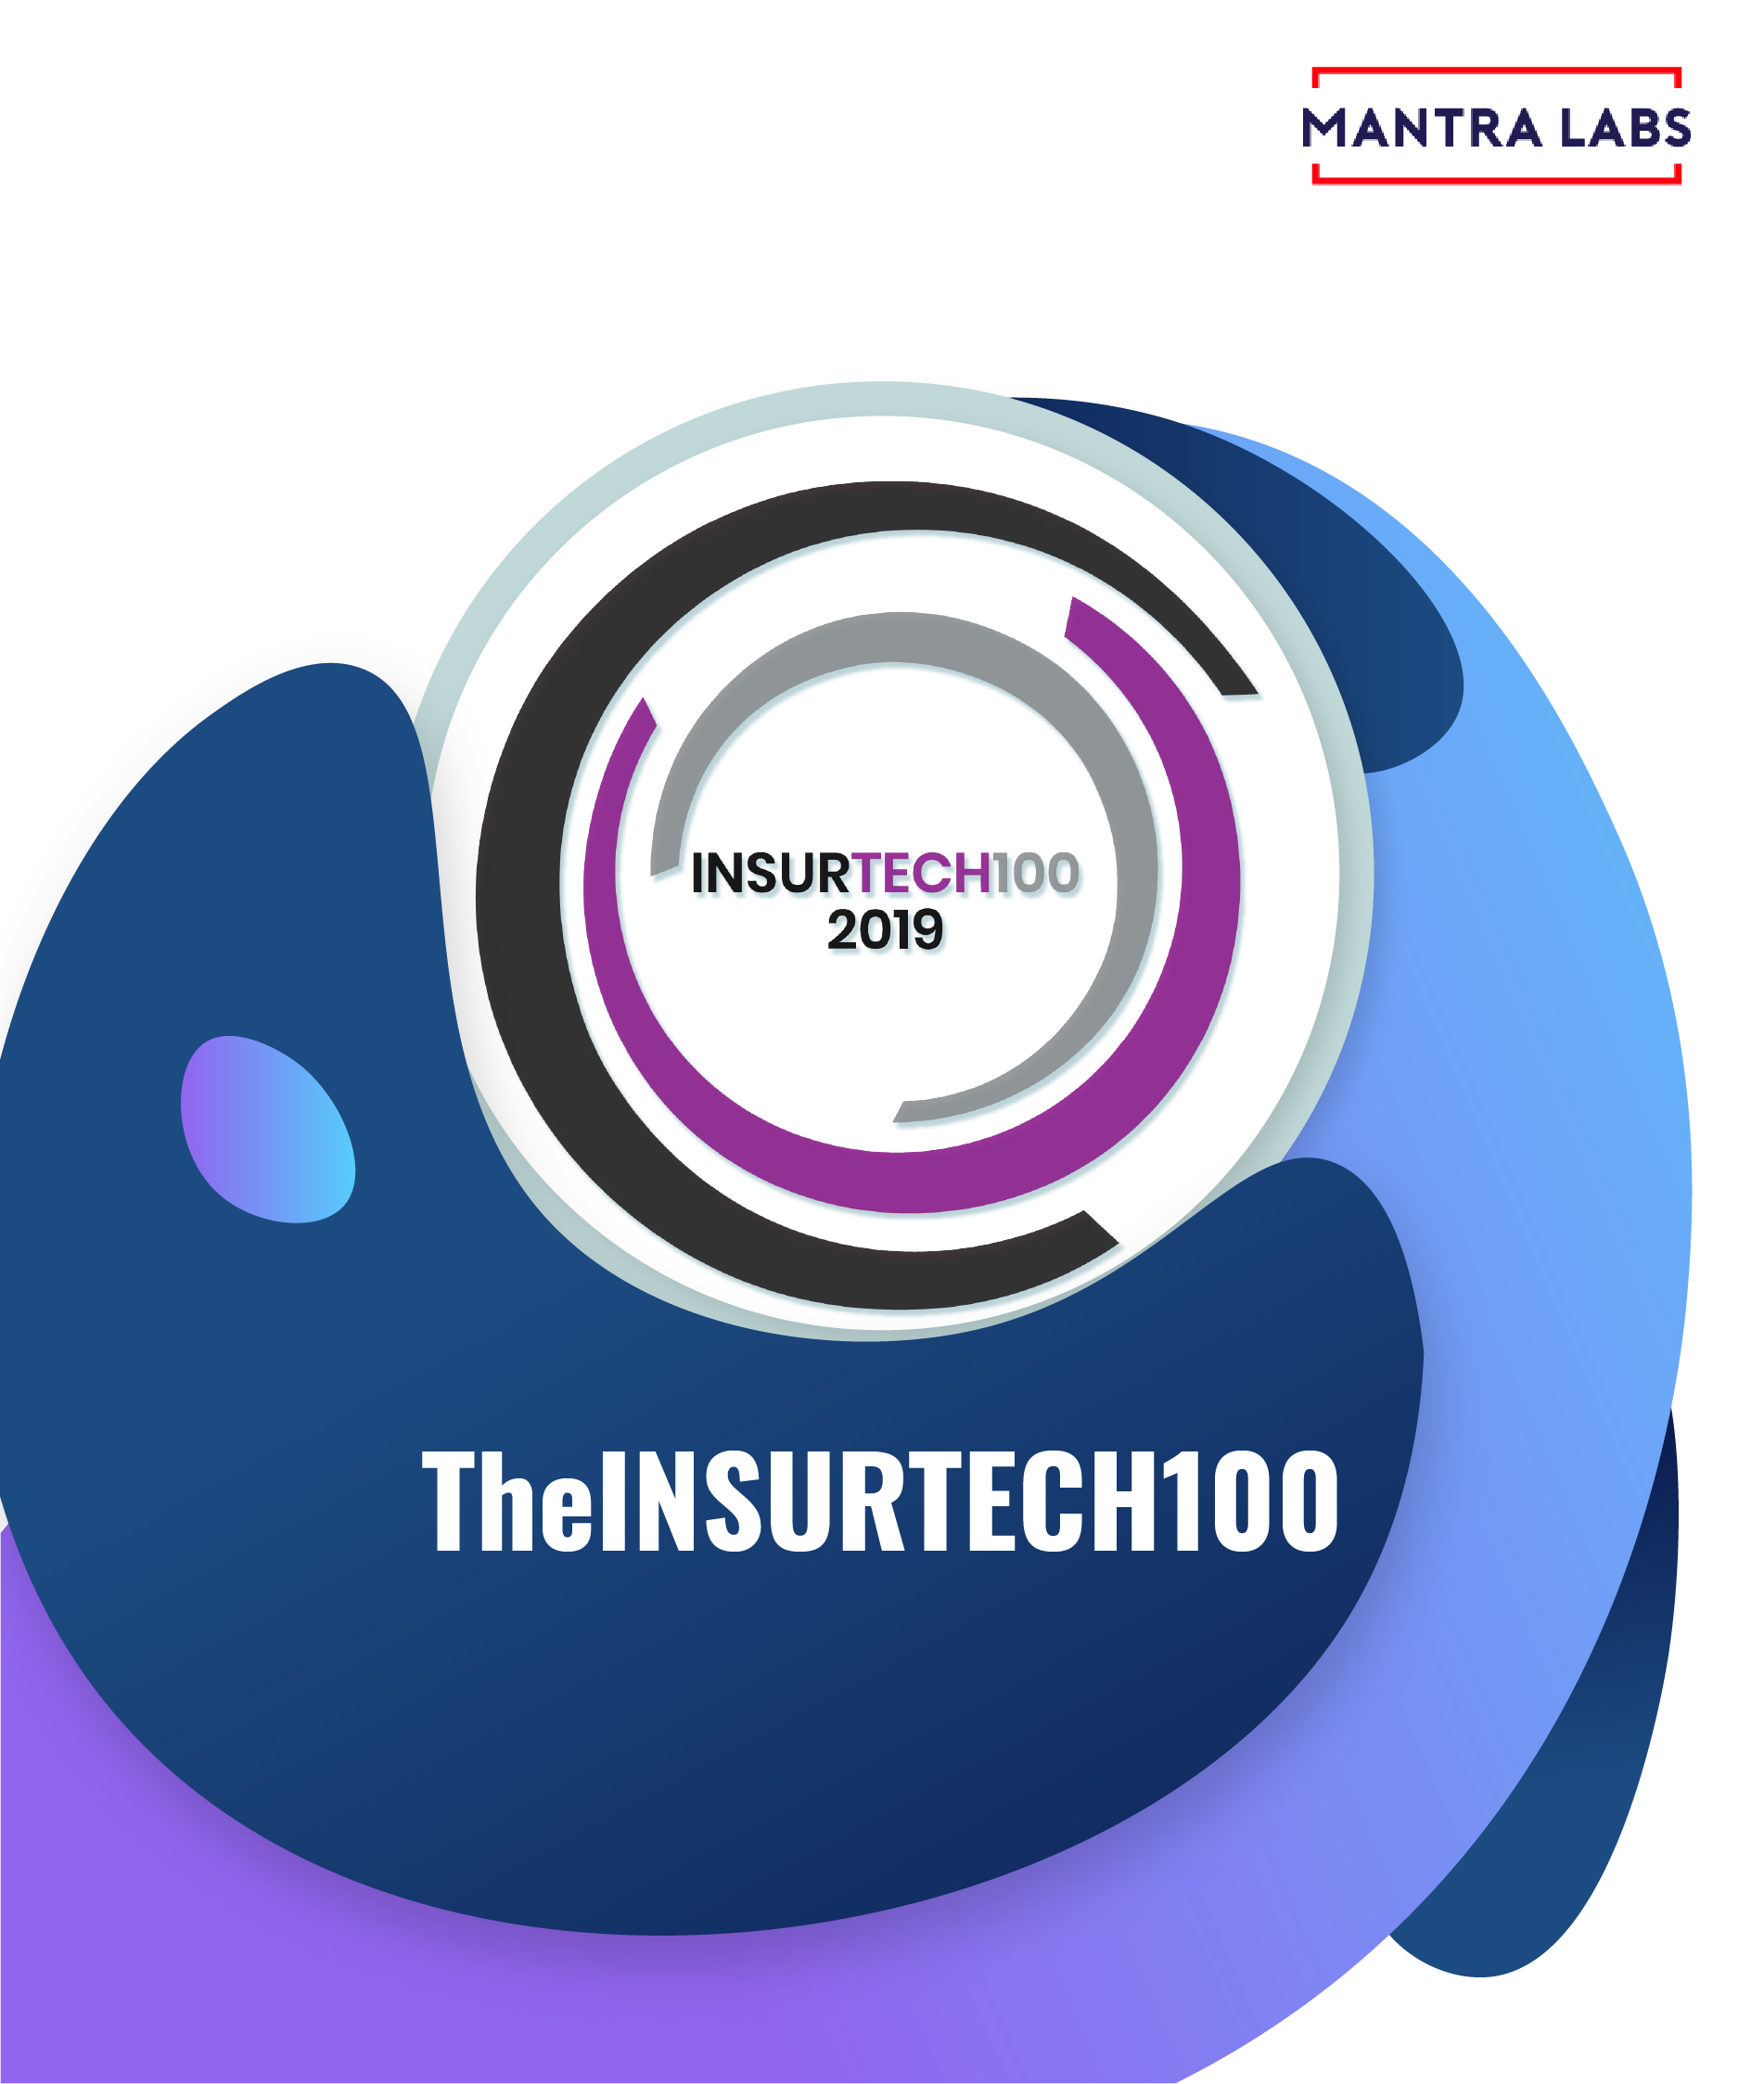 6 Indian InsurTech Startups Featured in the Prestigious 2019 InsurTech100